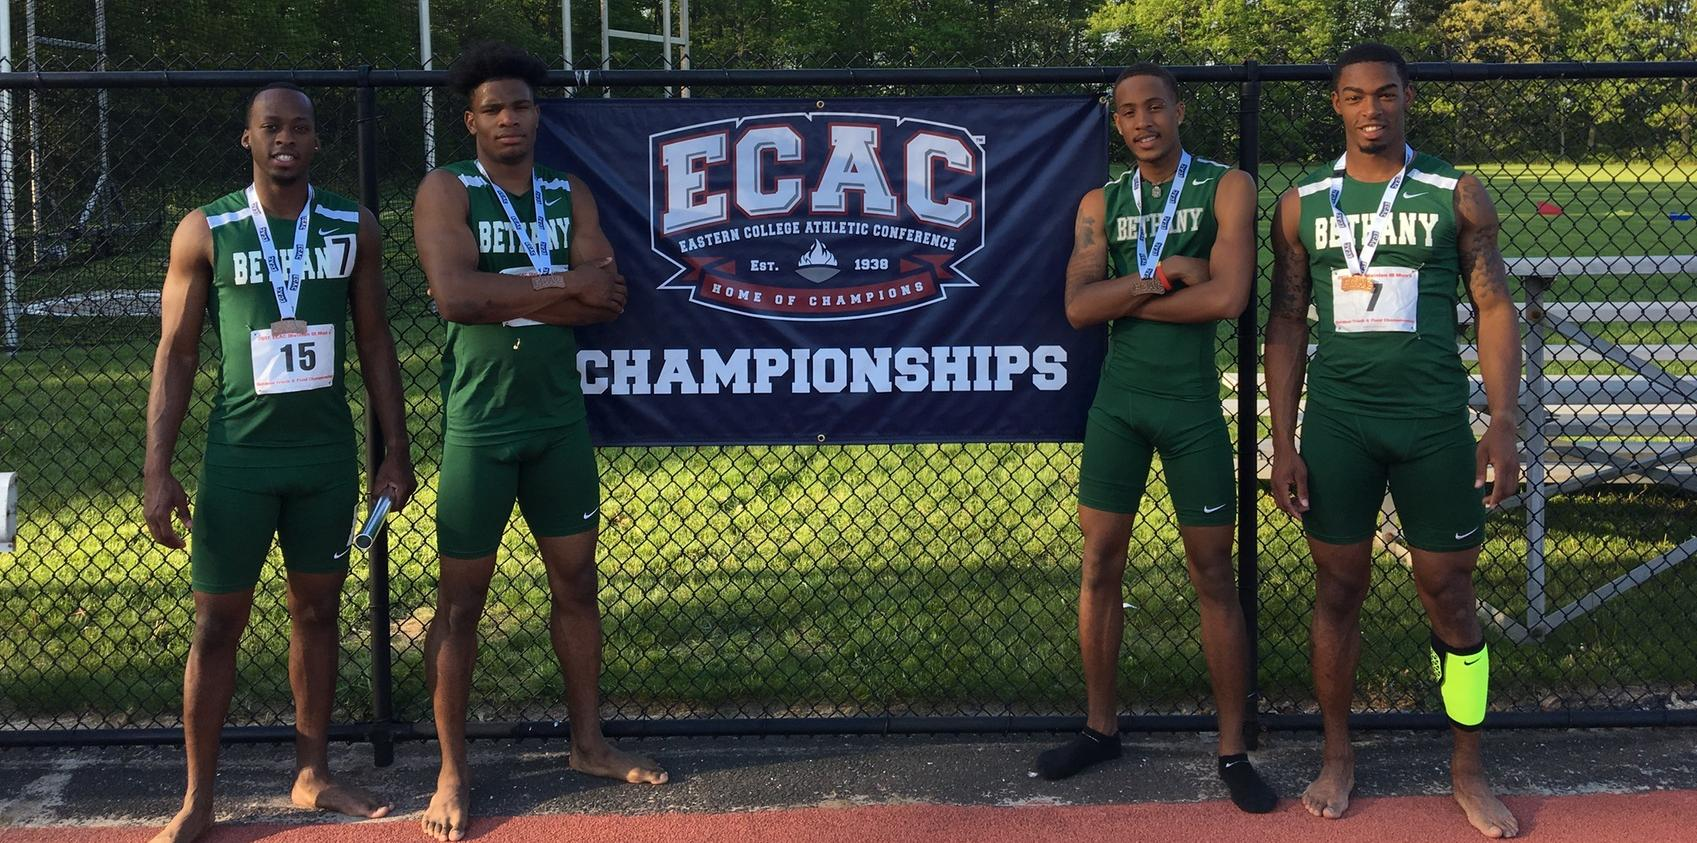 Sallah-Mohammed wins long jump to highlight ECAC Track and Field Championships